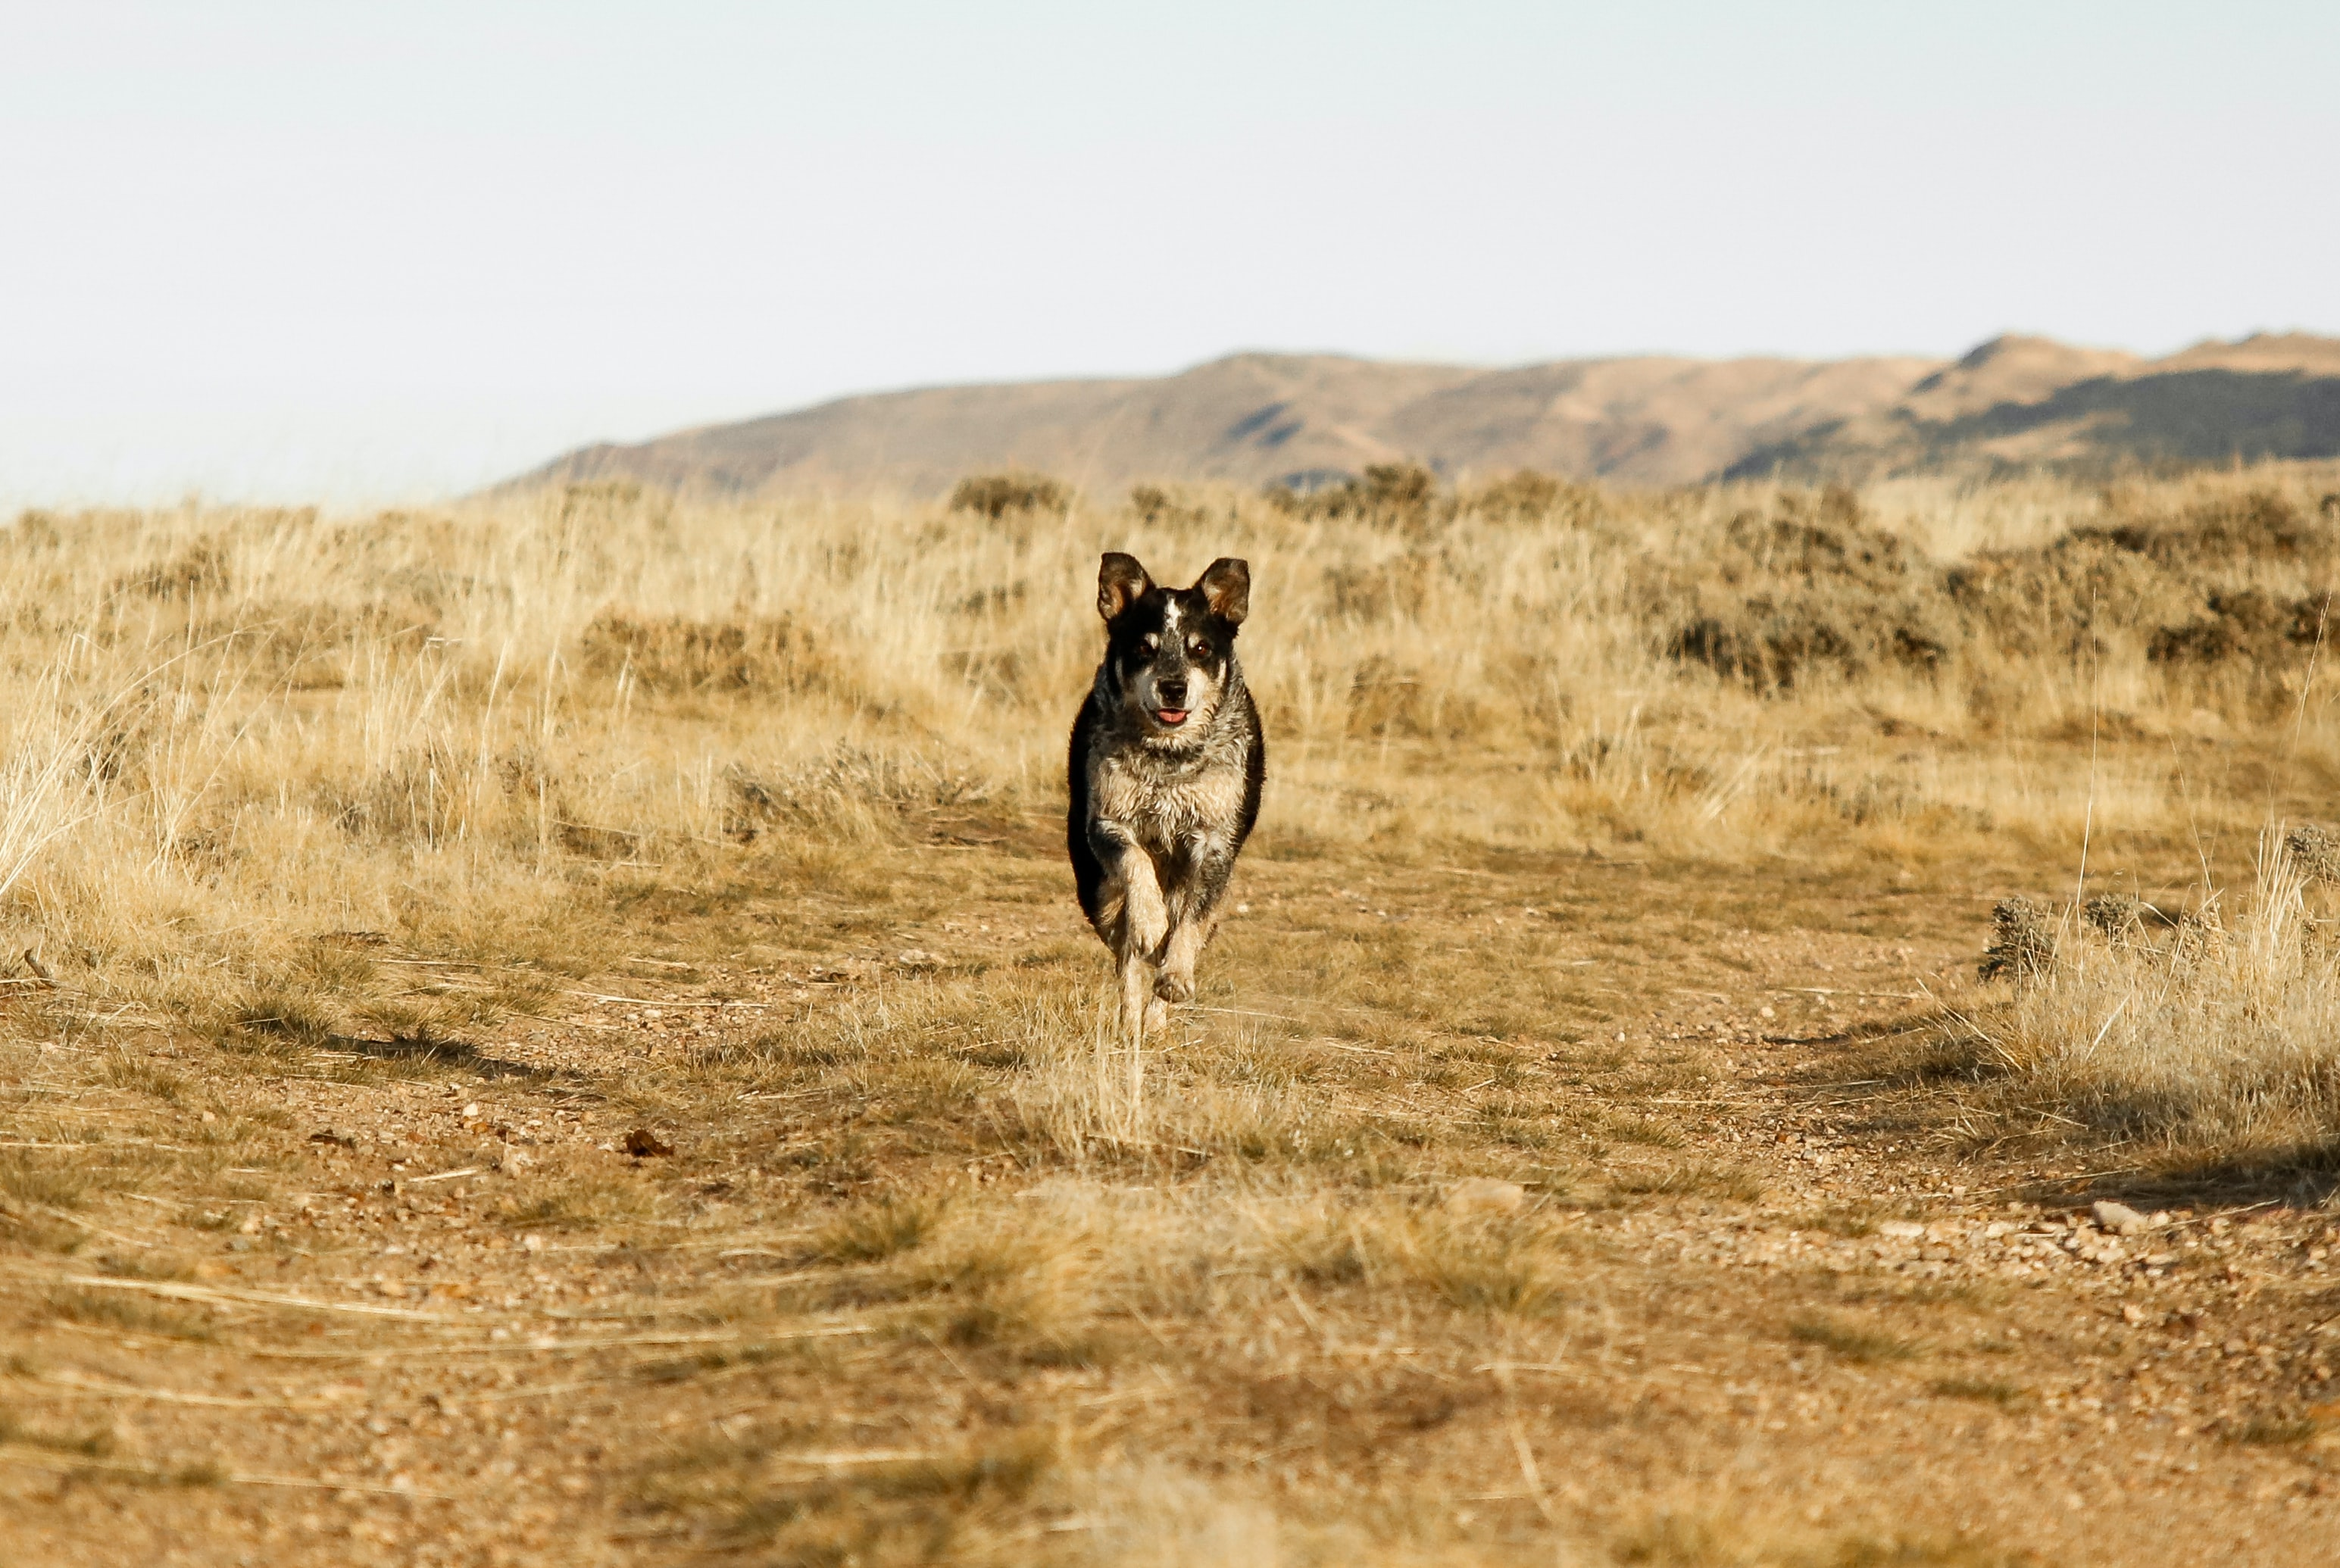 dog running on brown soil